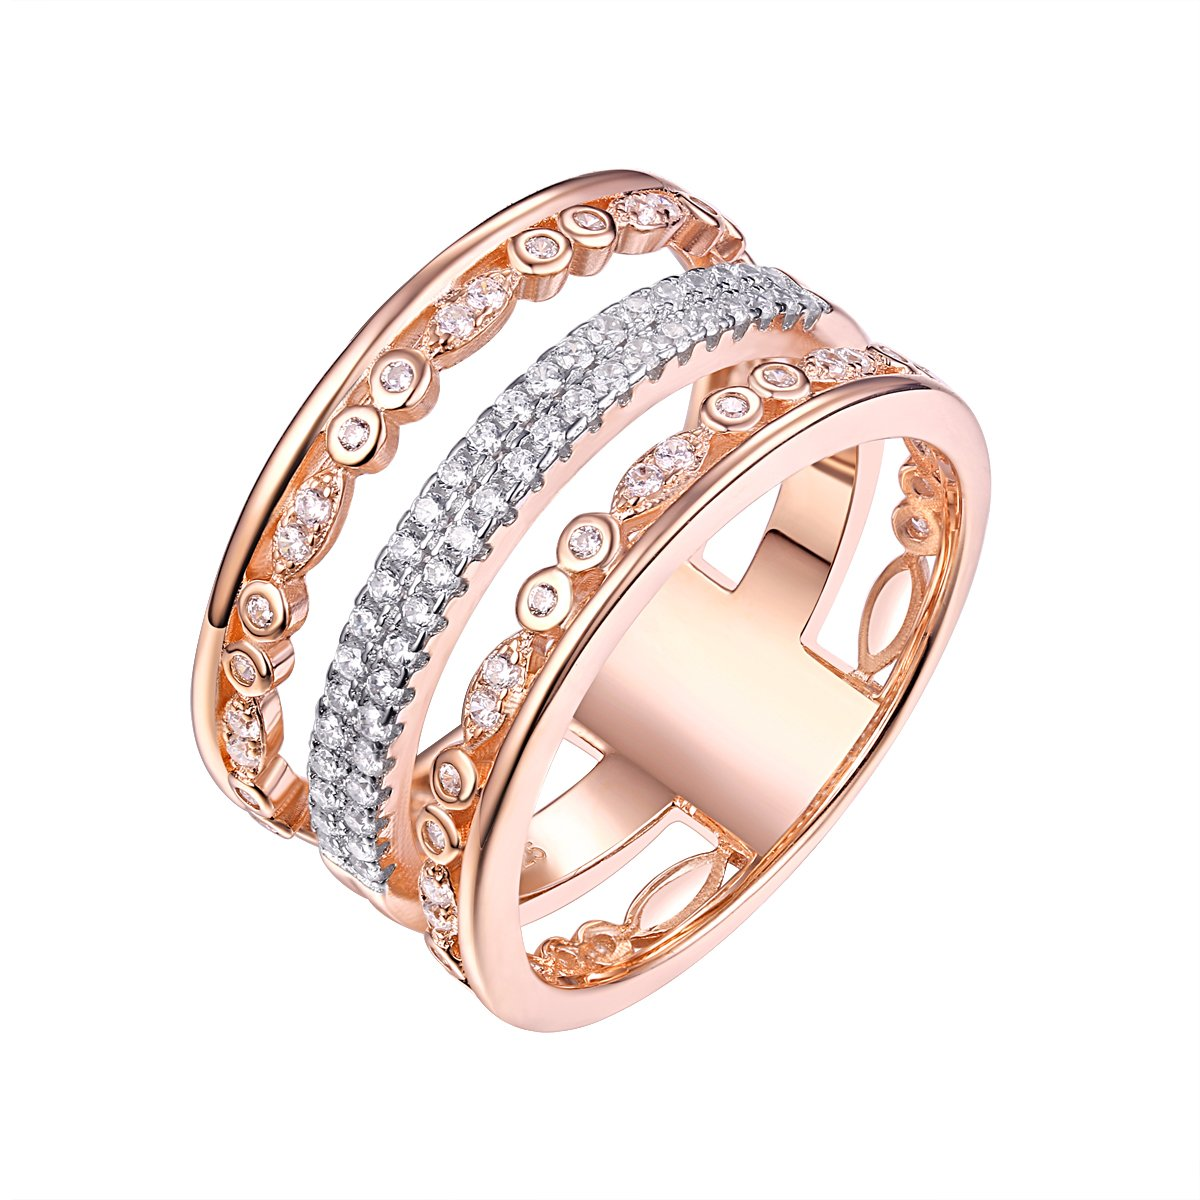 Newshe Wide Wedding Band For Women White Cz 925 Sterling Silver Rose Eternity Gemstone Ring Size 7